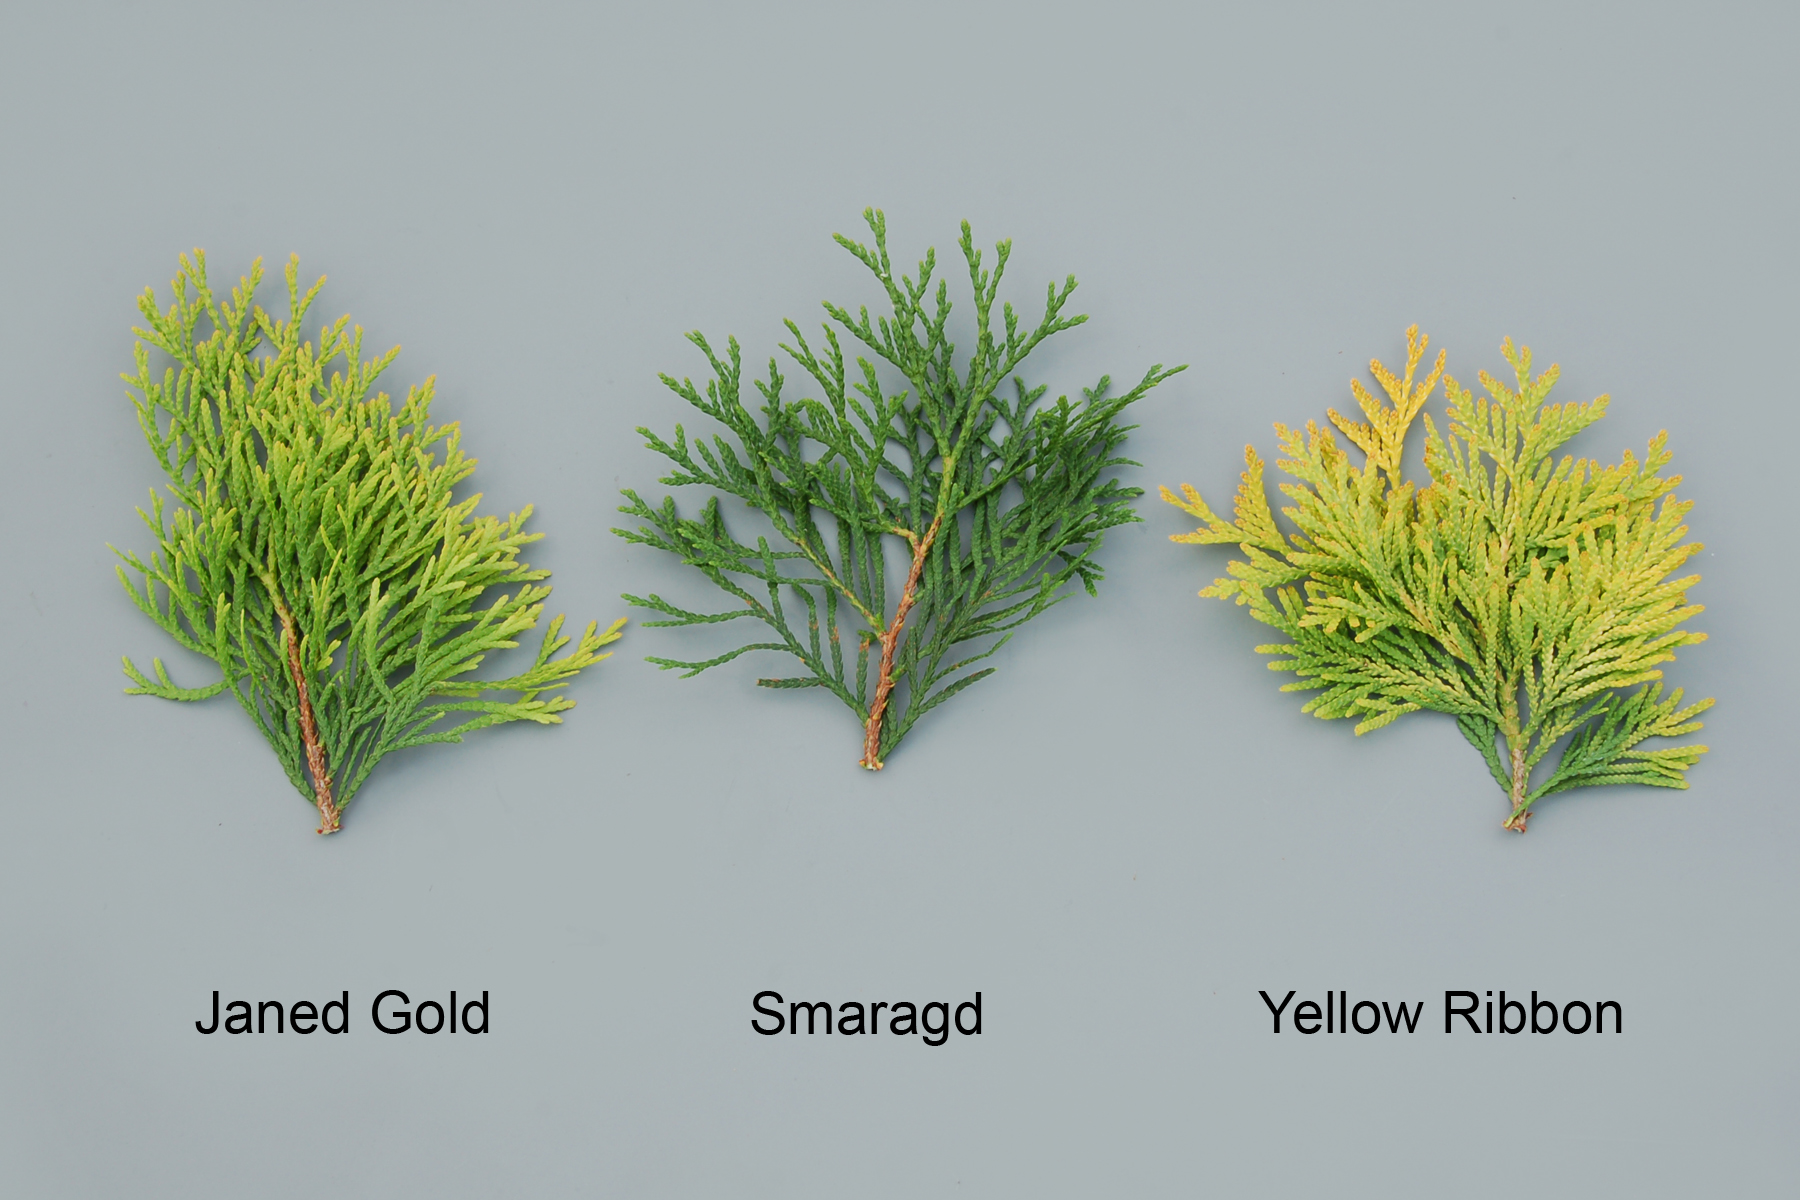 Thuja Yellow Ribbon Height Canadian Food Inspection Agency Janed Gold